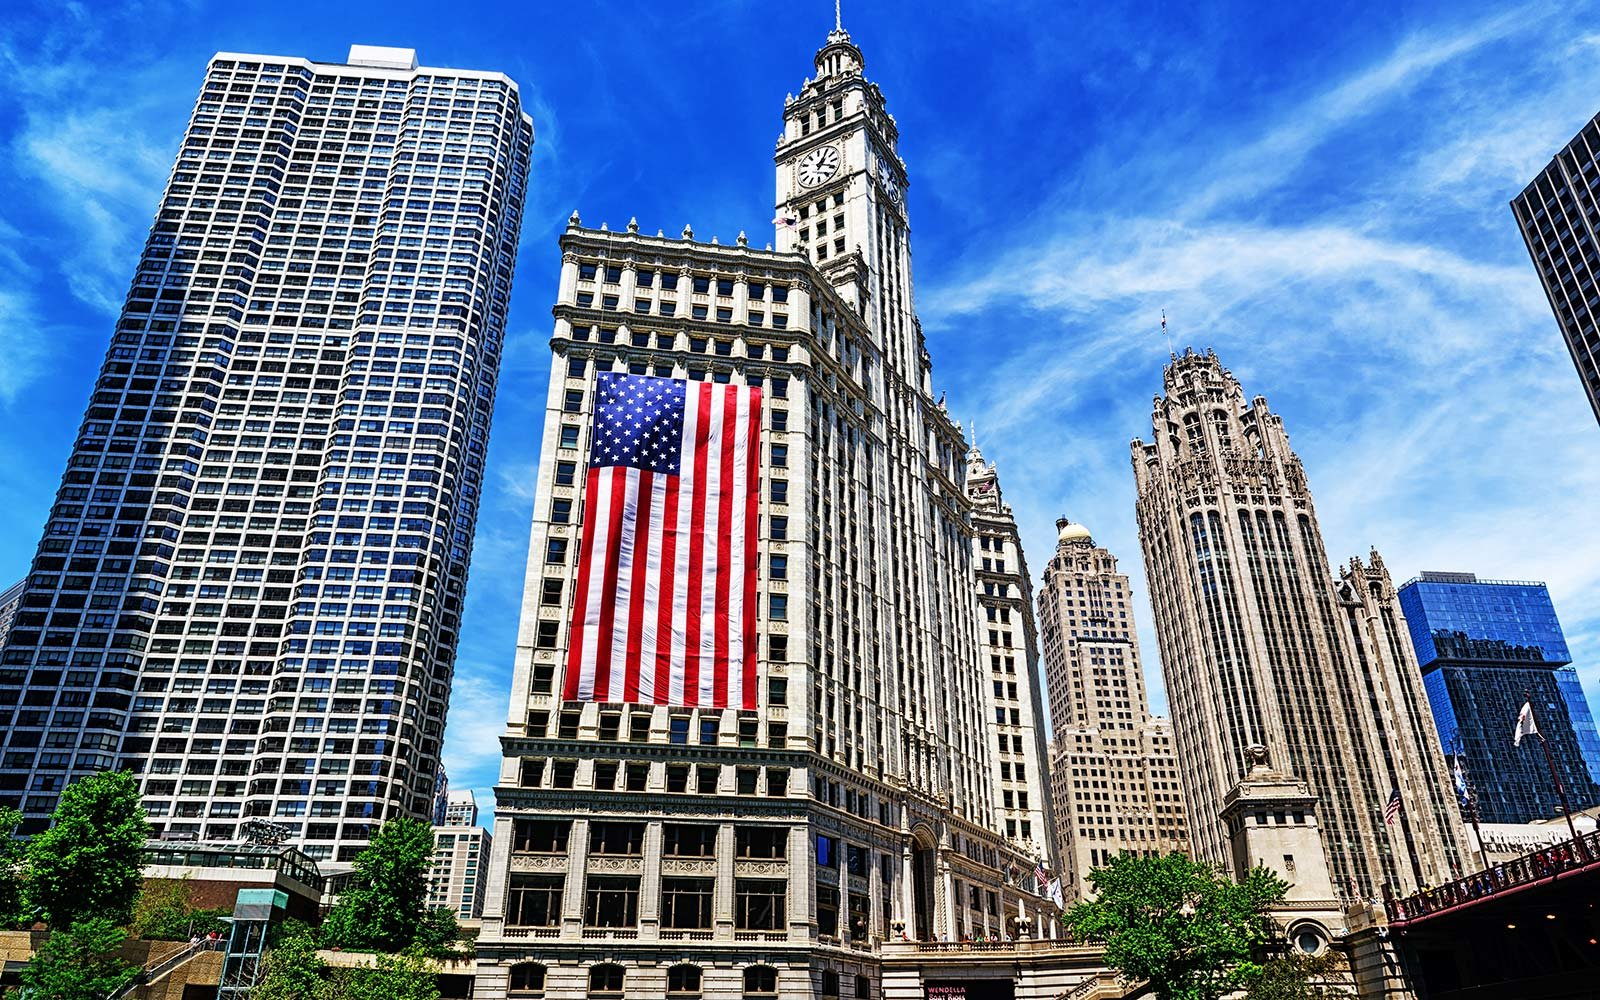 Fourth of July Independence Day Celebrations Holiday Wrigley Building Chicago Illinois